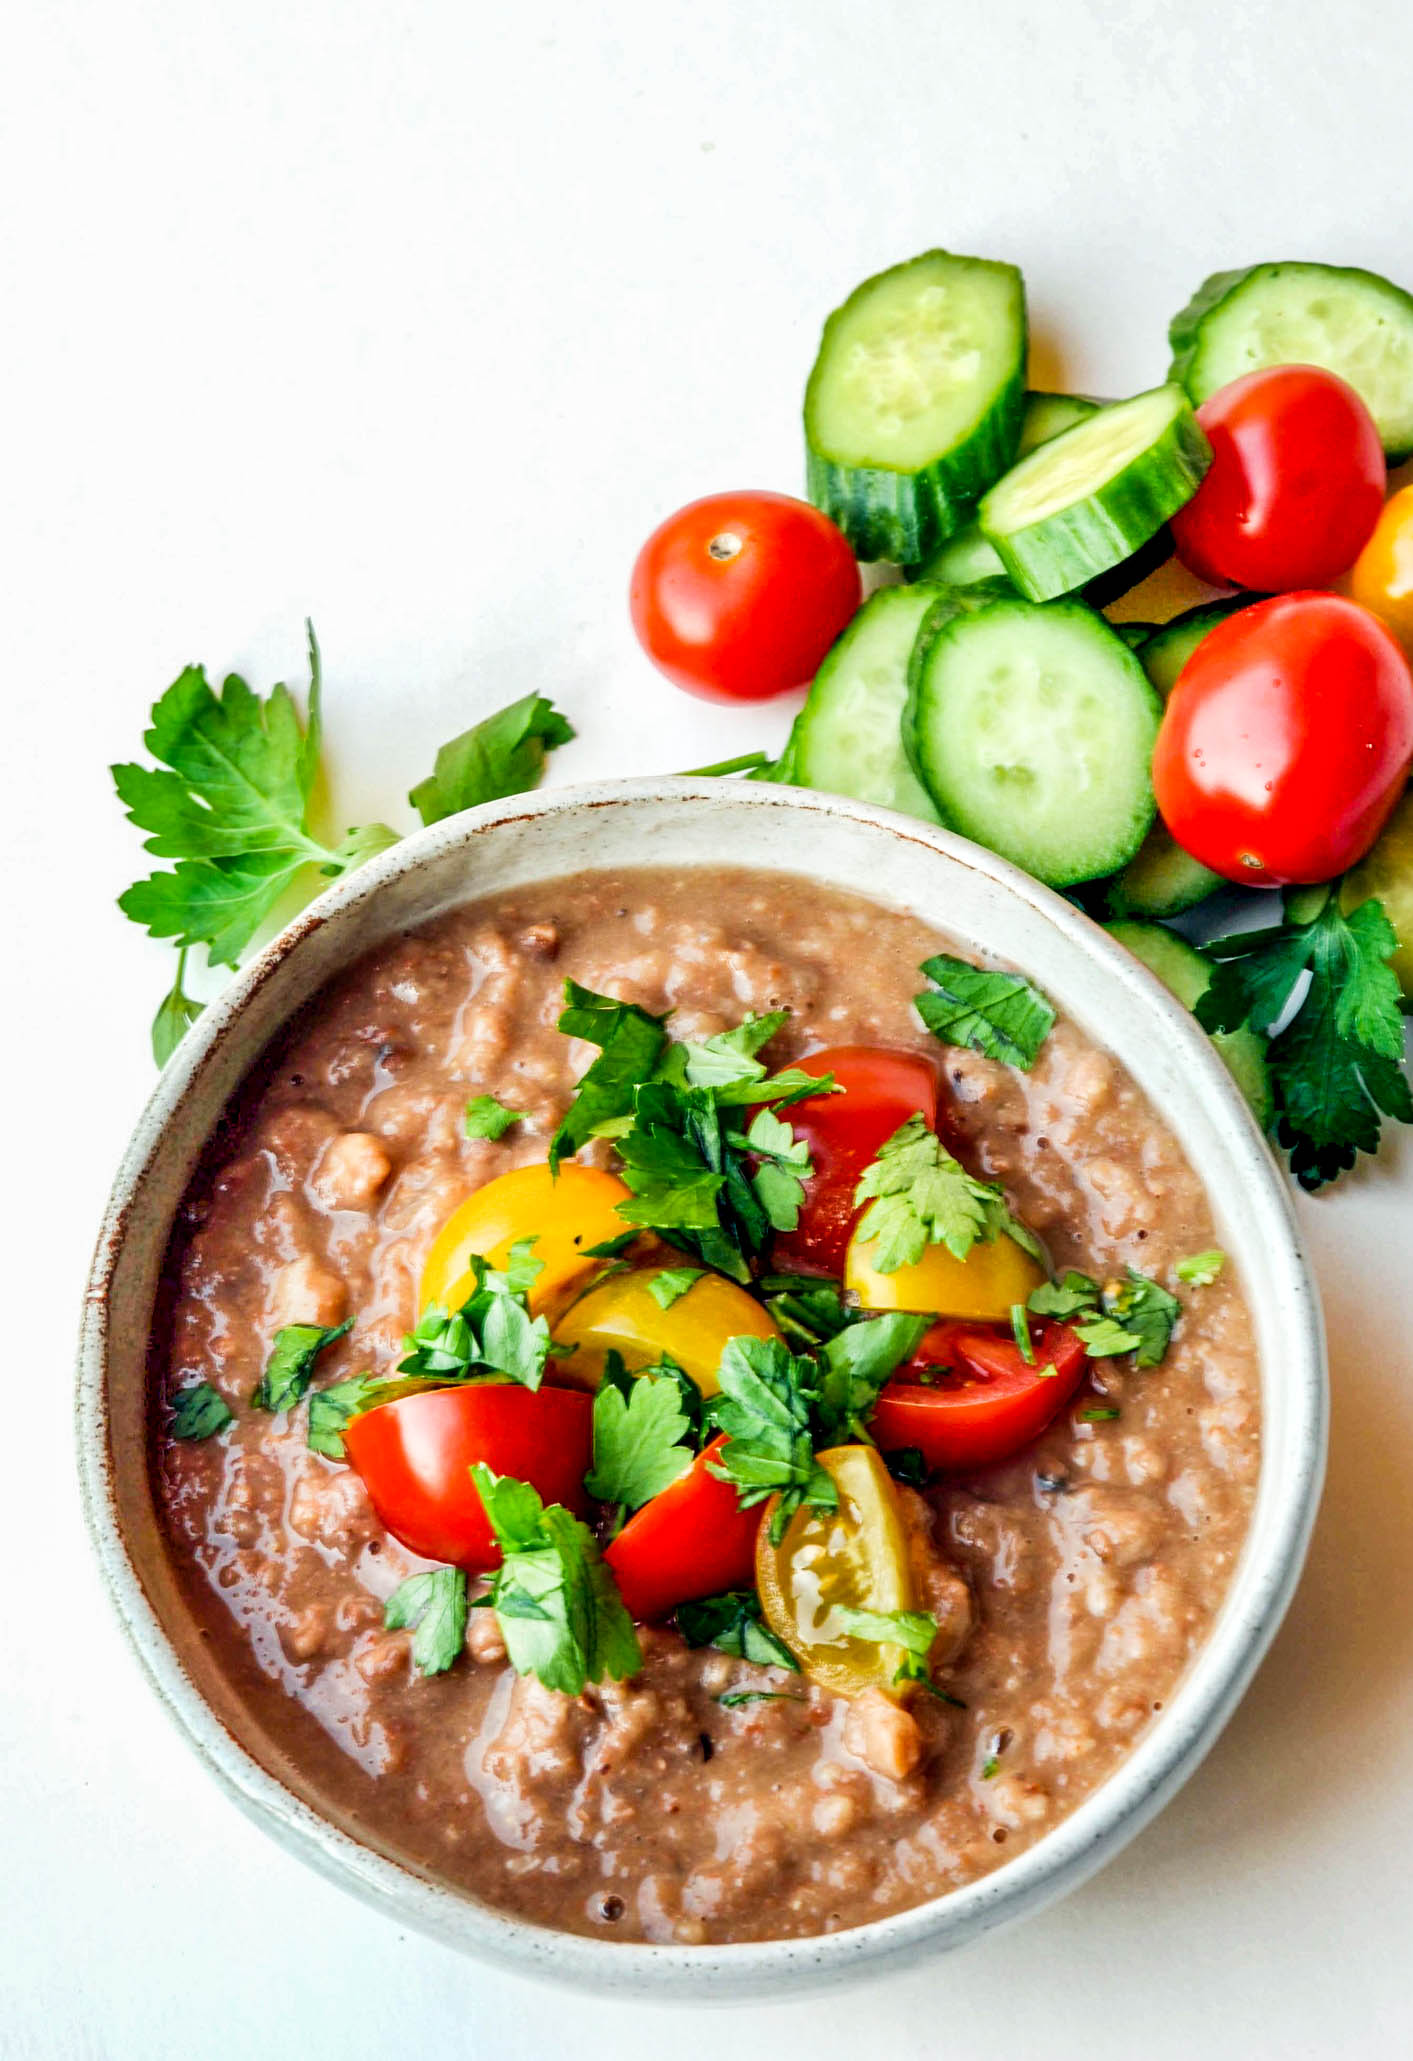 Ful Medames - a vegan, slow cooker recipe for fava beans, onions, garlic, and cumin. A healthy, delicious breakfast recipe.